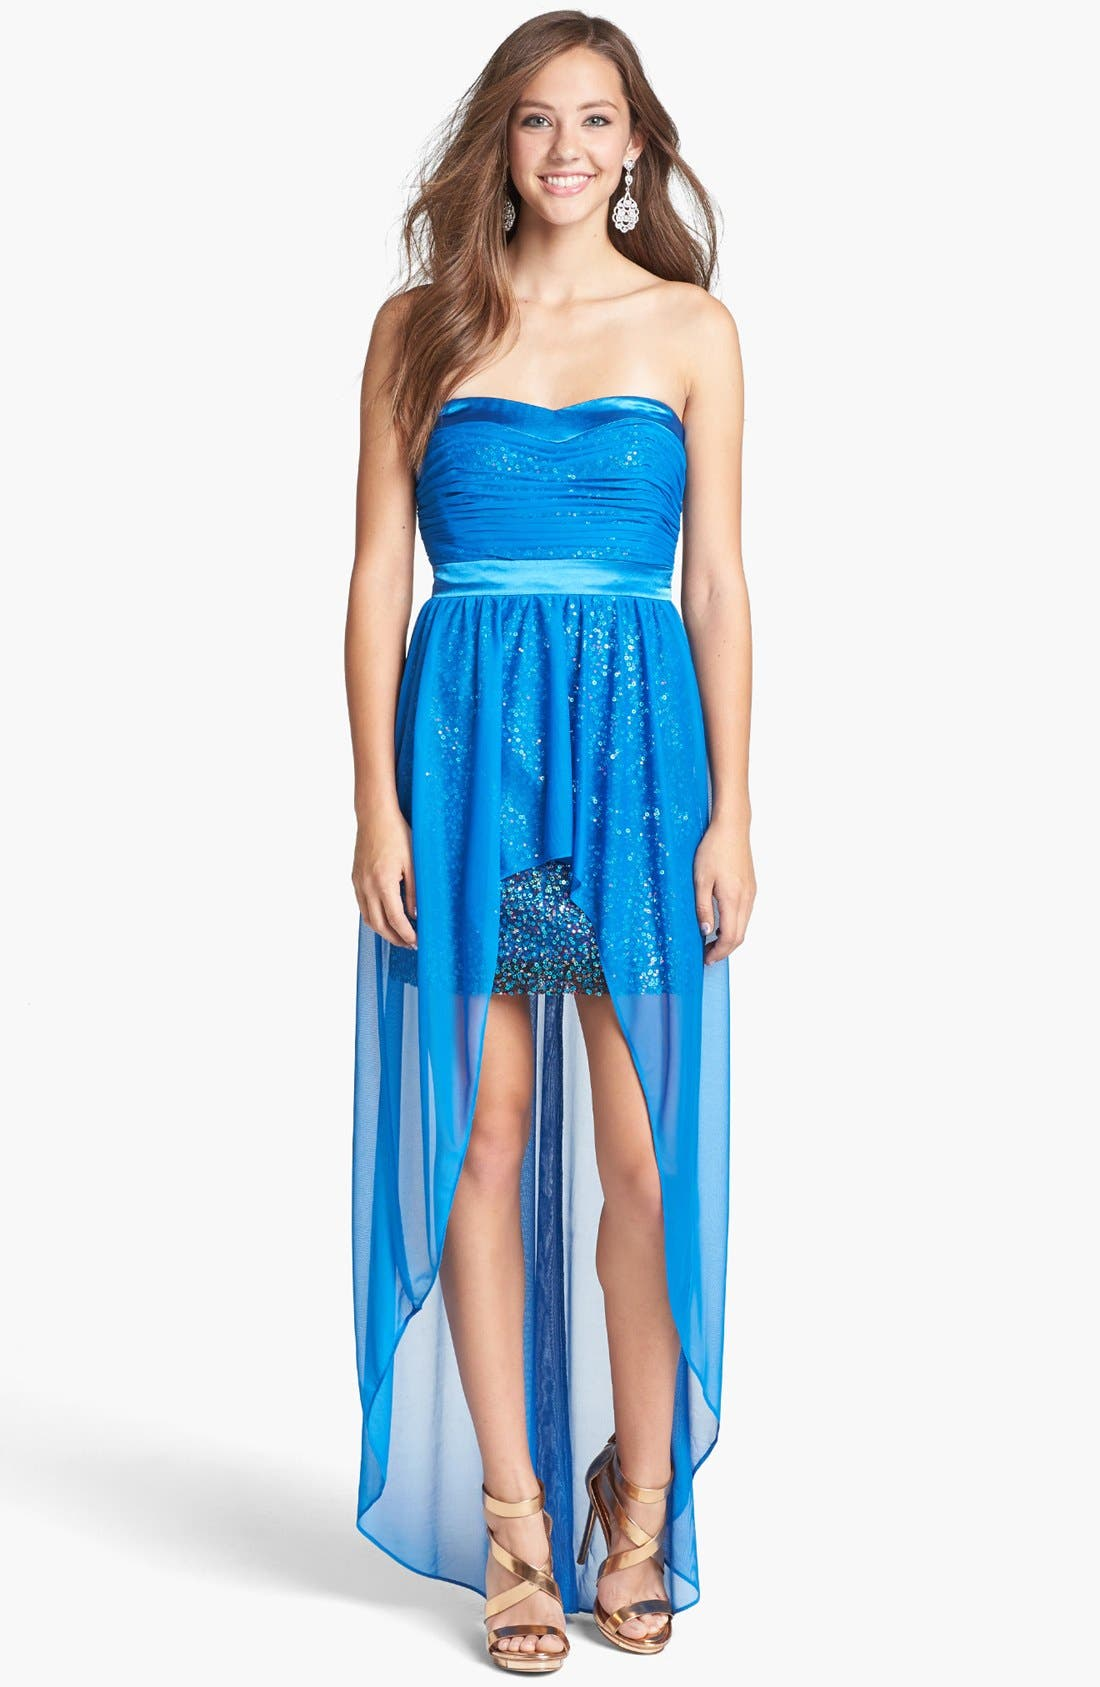 Alternate Image 1 Selected - Hailey Logan Chiffon Overlay Sequin Dress (Juniors) (Online Only)